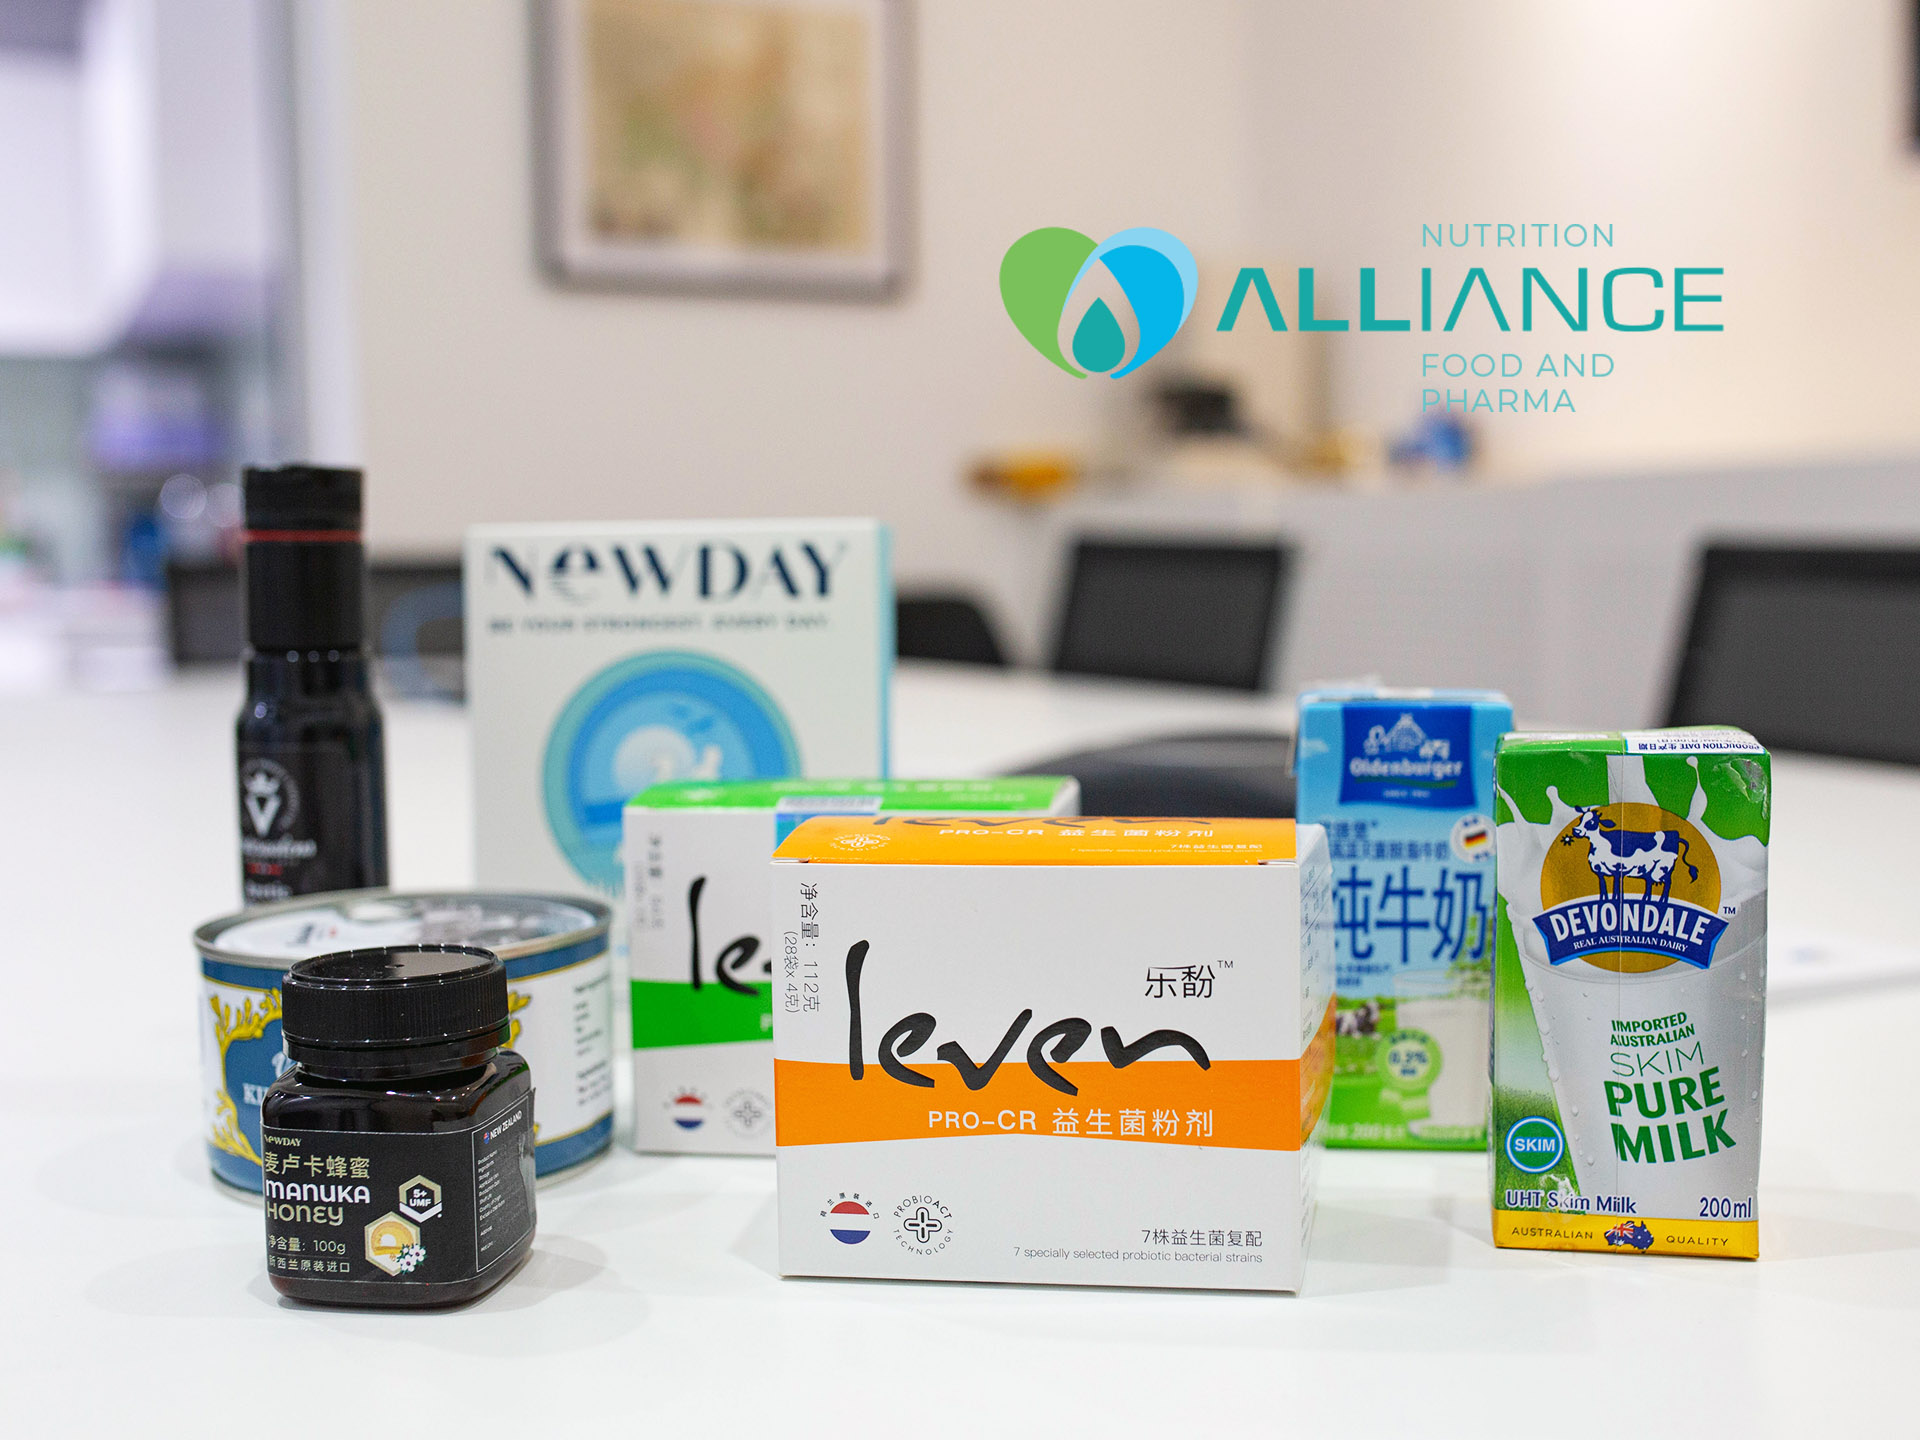 Alliance-nutrition-food-pharma-our-products-1920